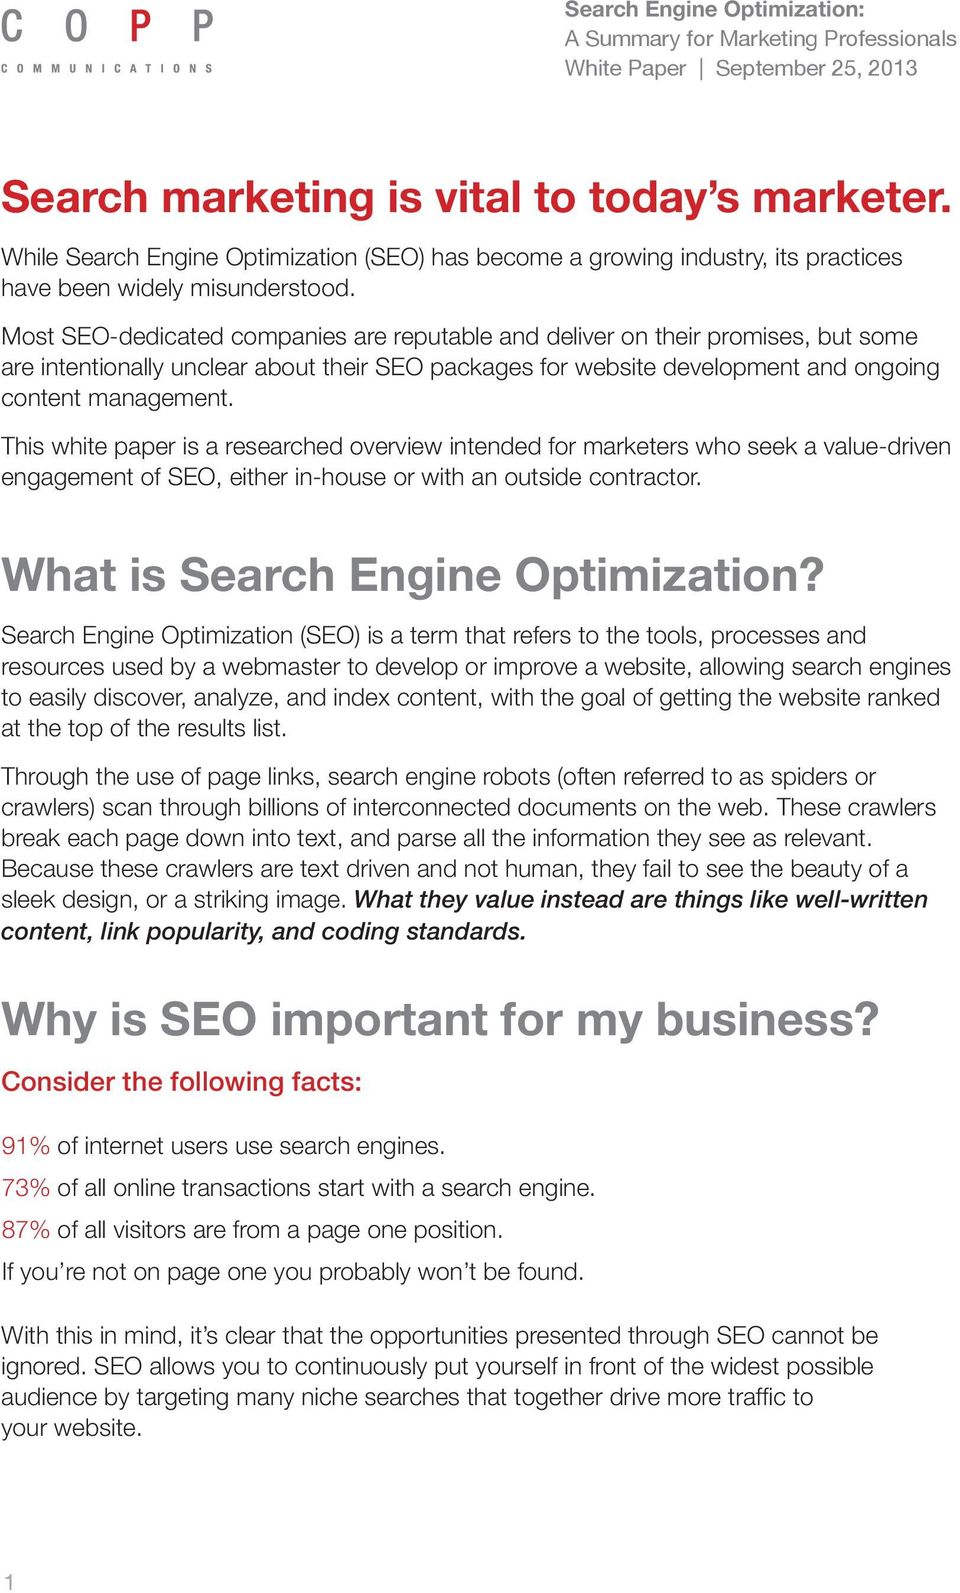 This white paper is a researched overview intended for marketers who seek a value-driven engagement of SEO, either in-house or with an outside contractor. What is Search Engine Optimization?